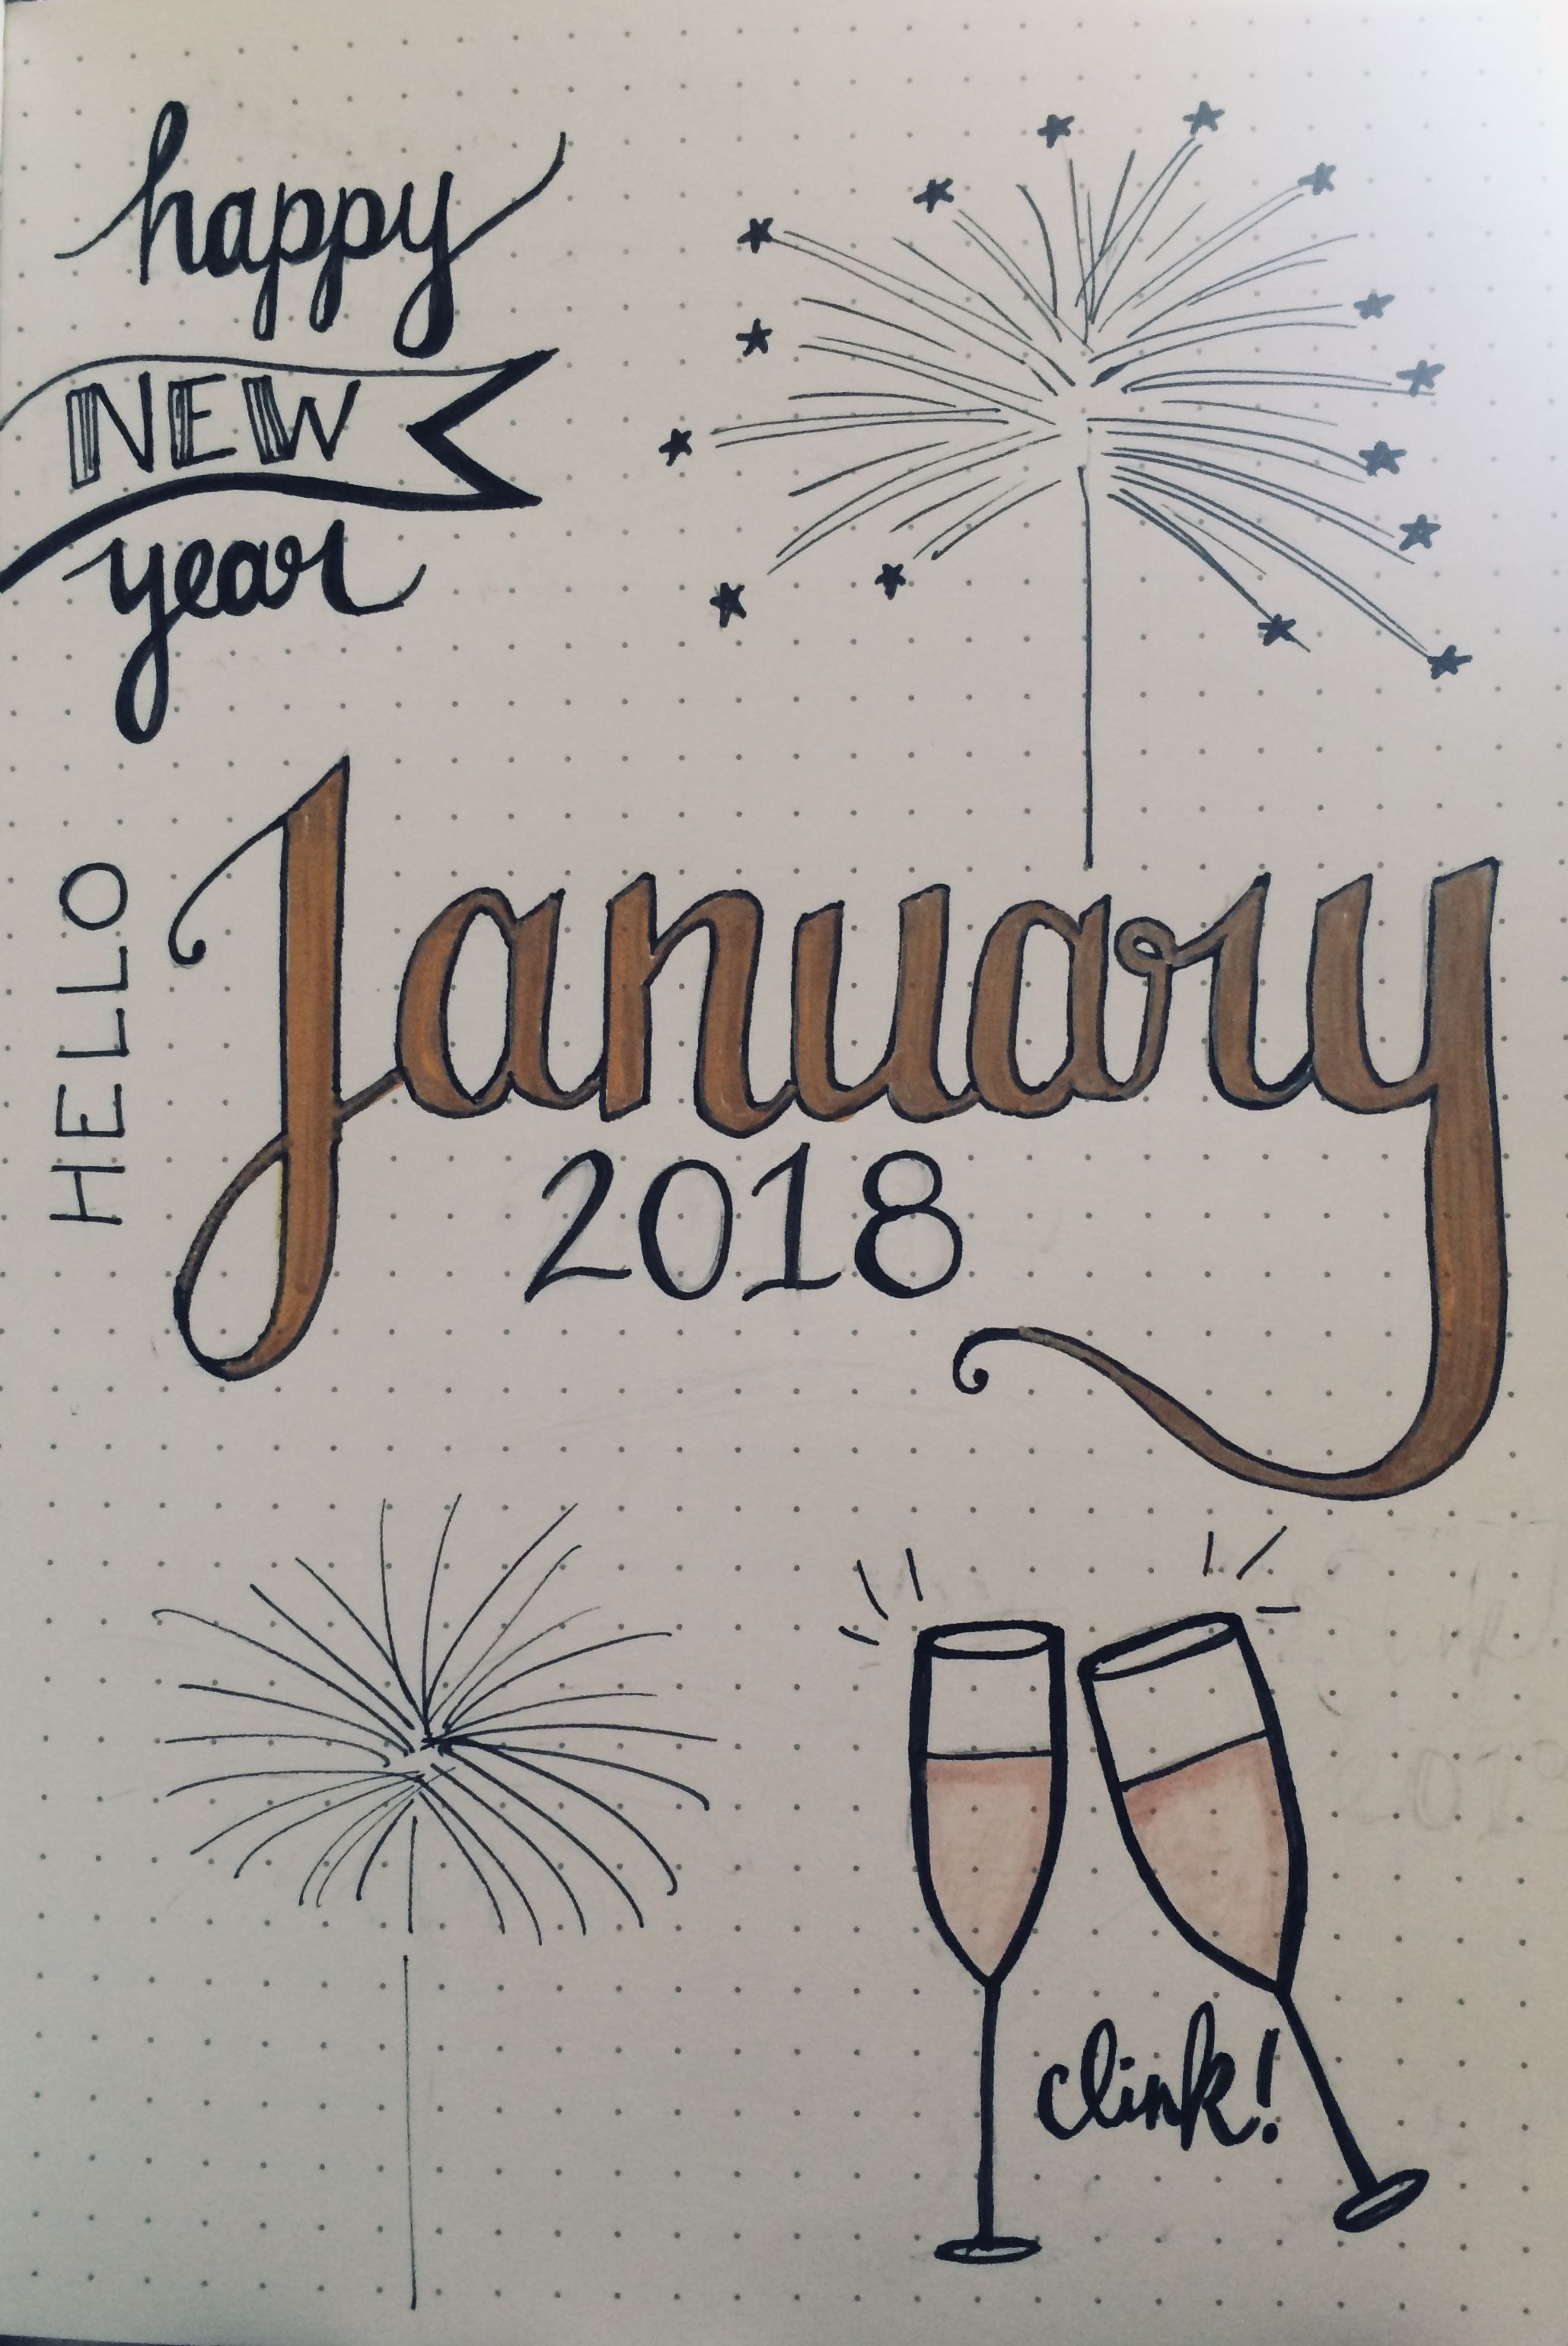 My January cover page. I drew inspiration from several different sources and I love the end result! #bulletjournal #january #happynewyear